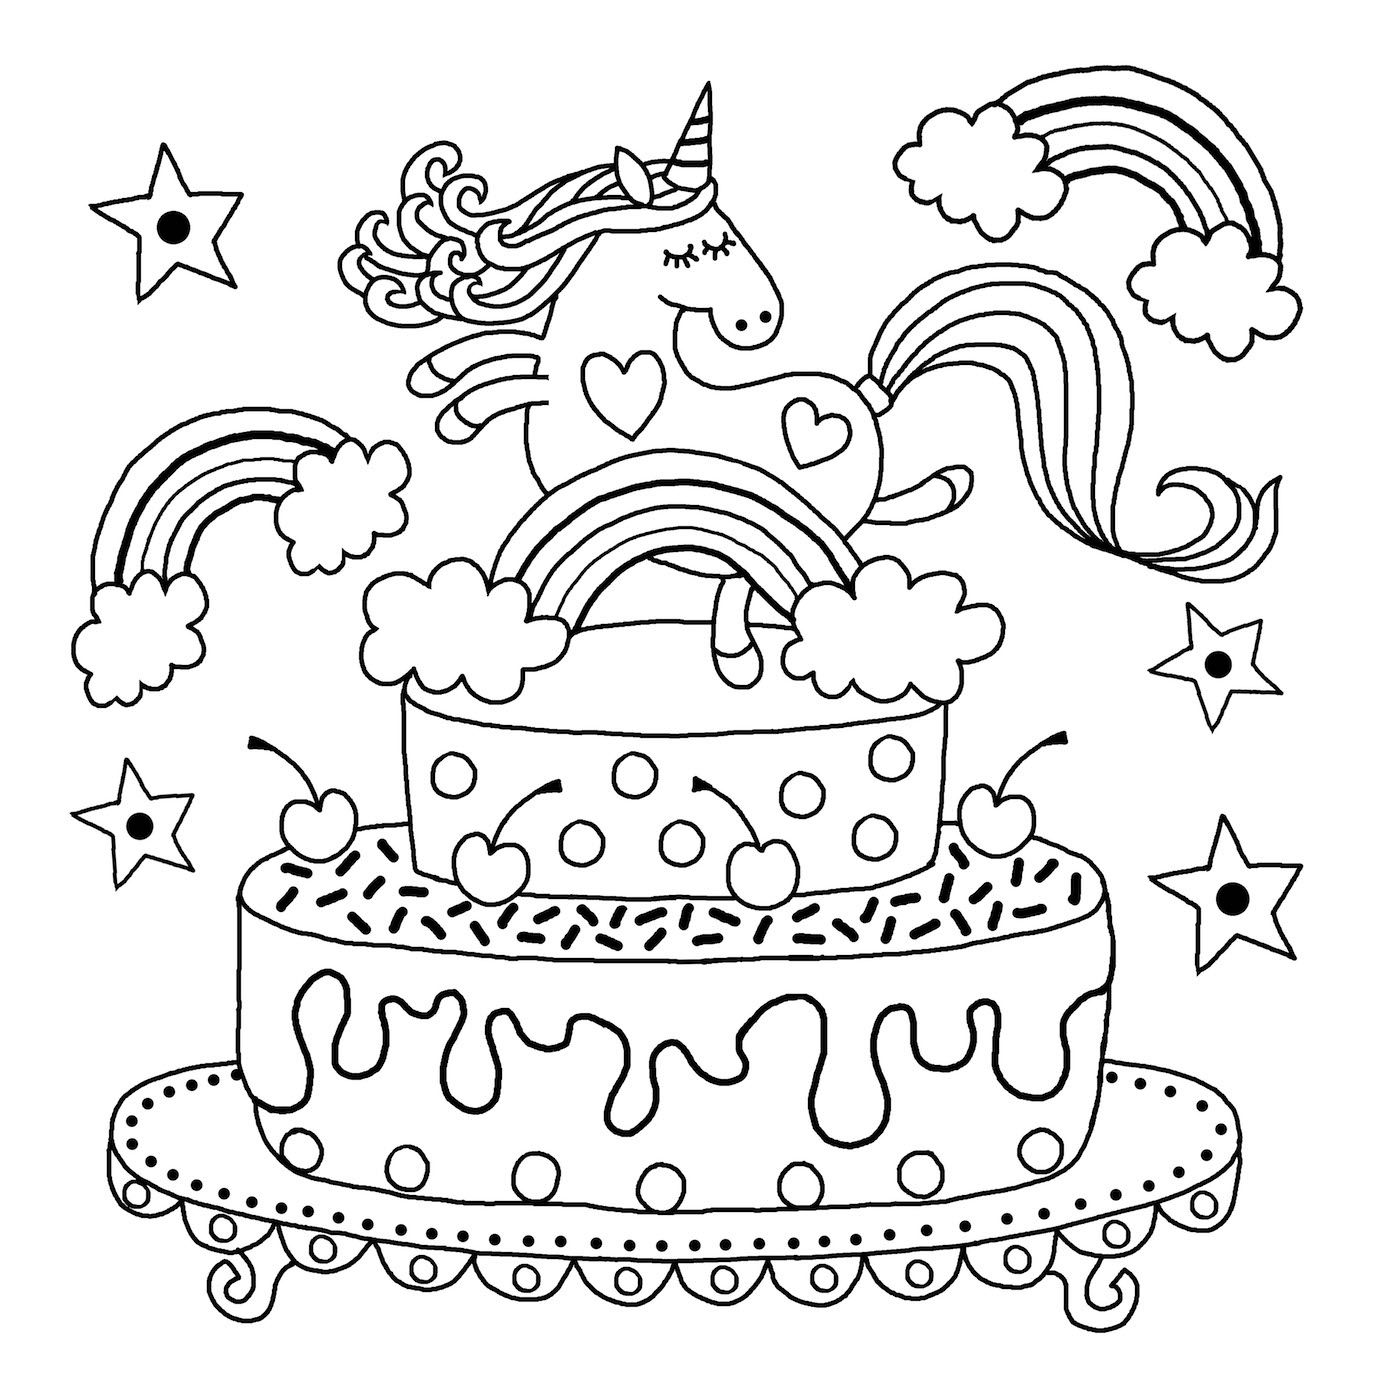 coloring pictures of unicorns print download unicorn coloring pages for children pictures of unicorns coloring